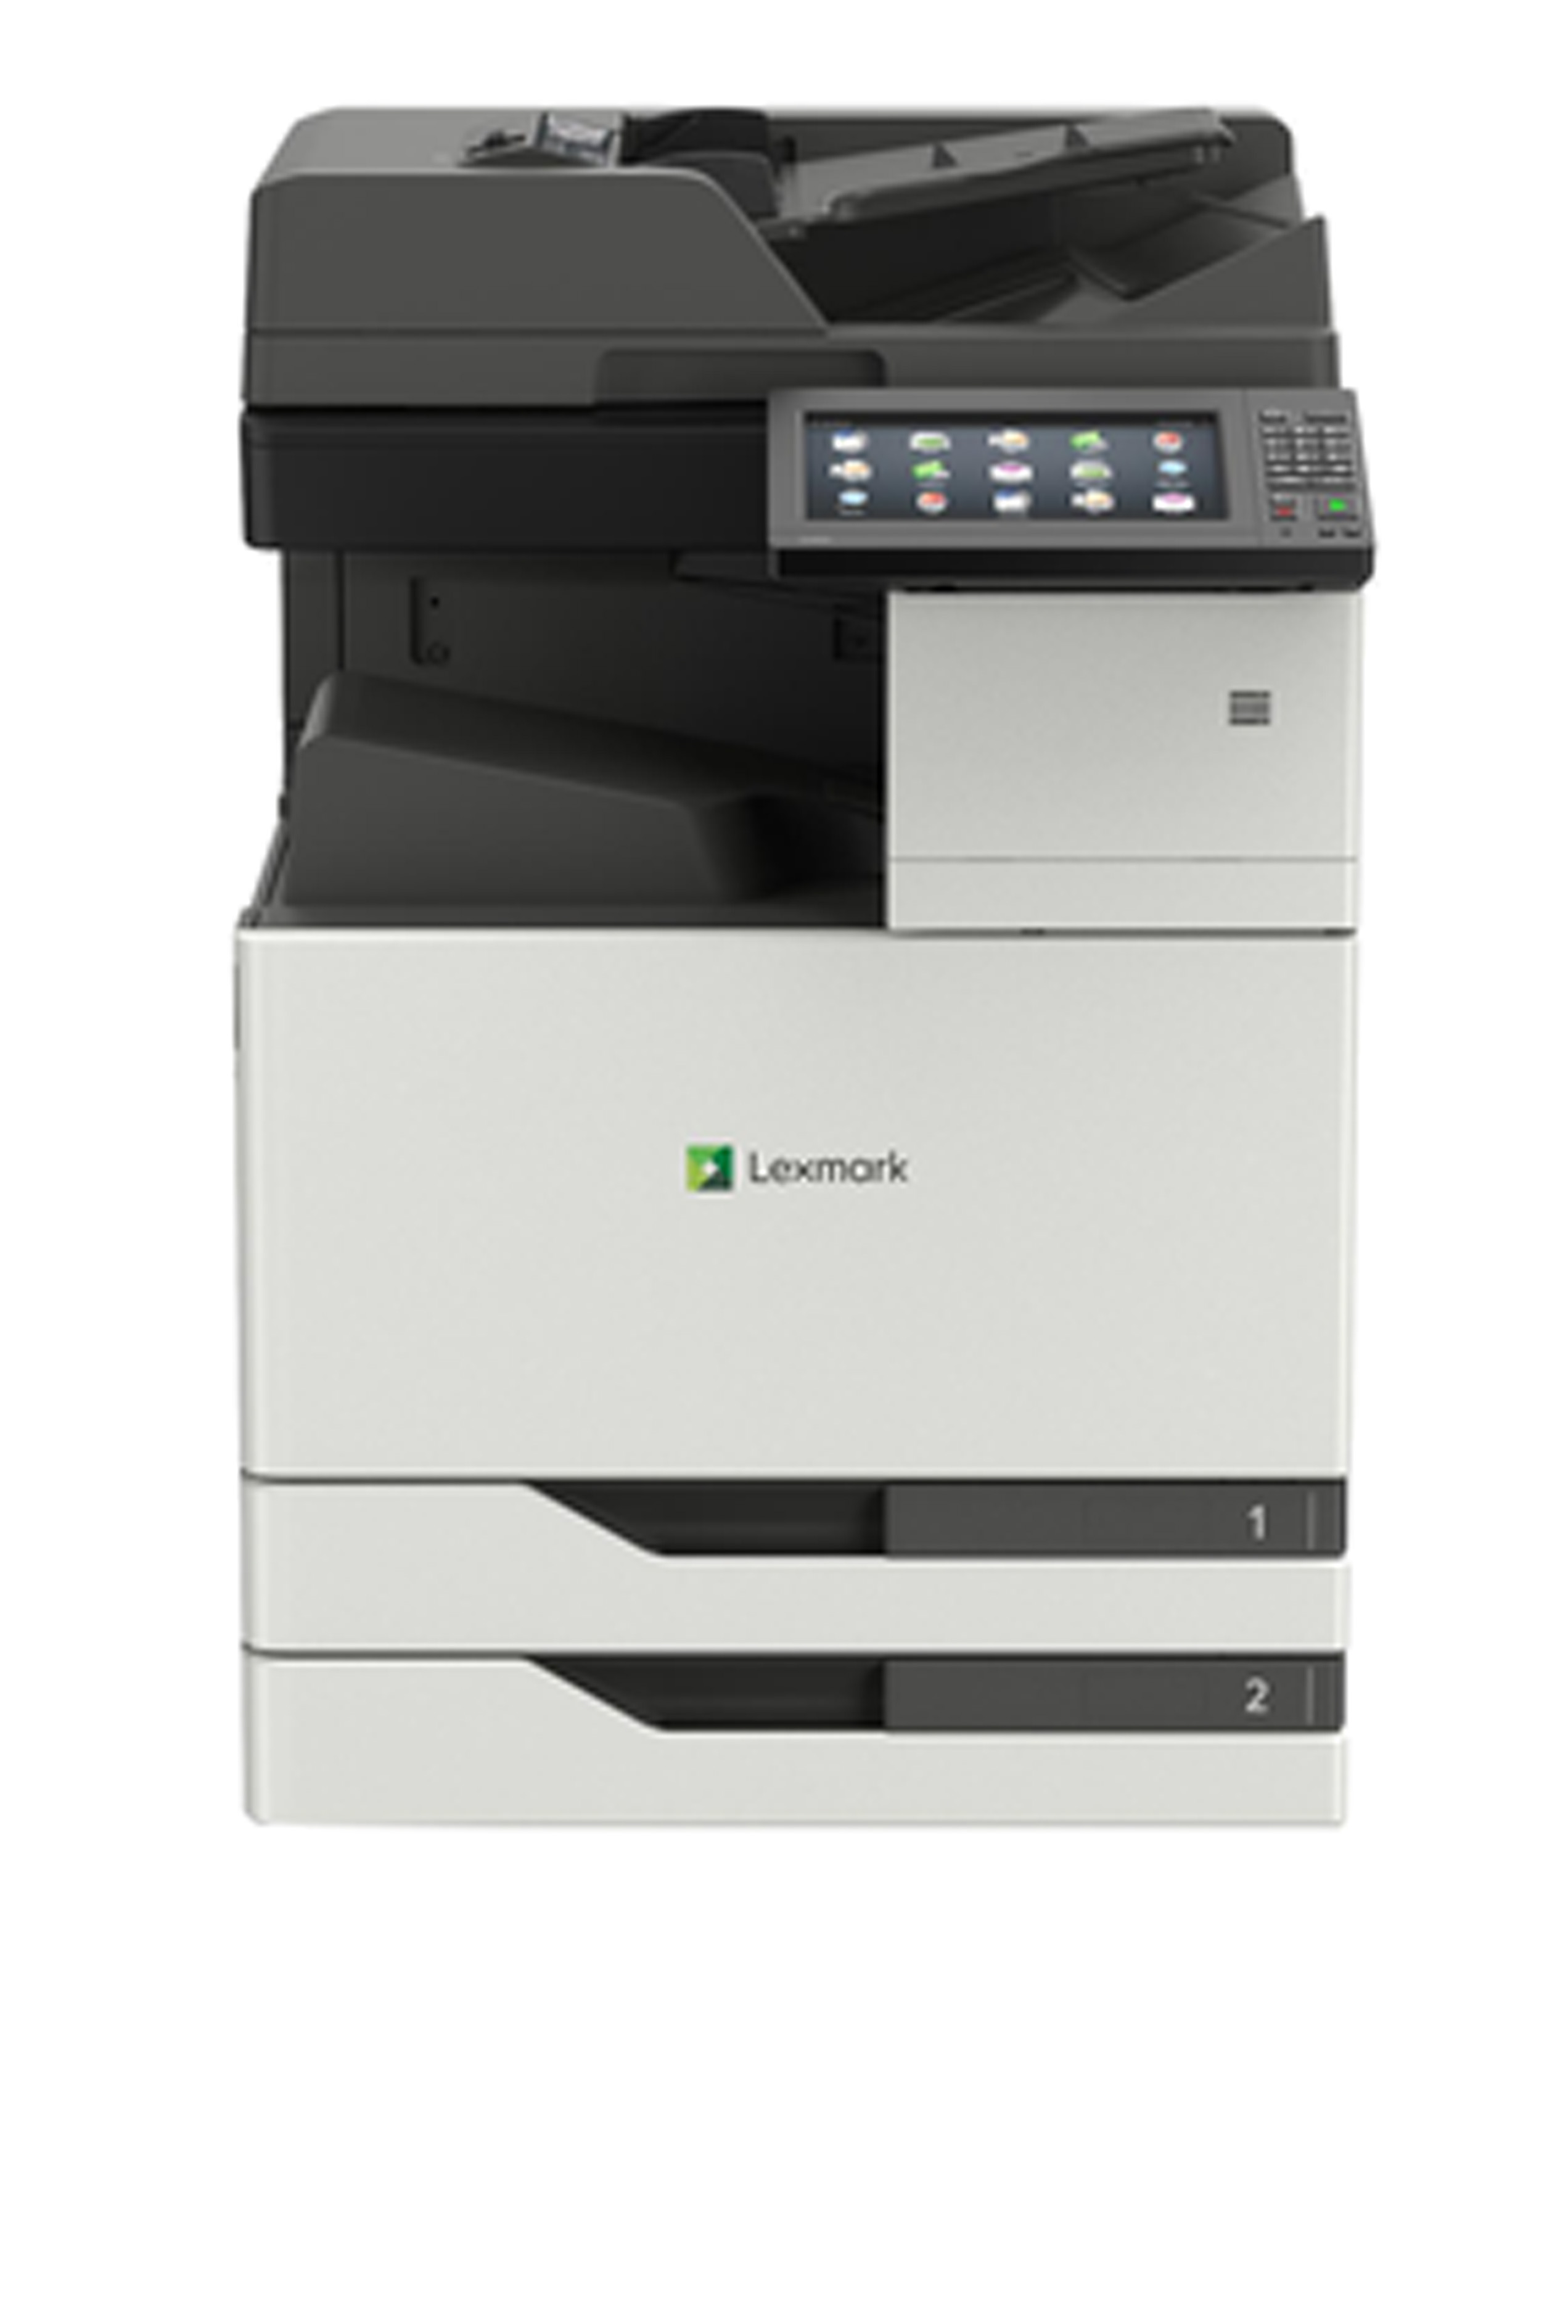 Lexmark LEXMARK CX922DE MULTIFUNCTION PRINTER (45ppm)